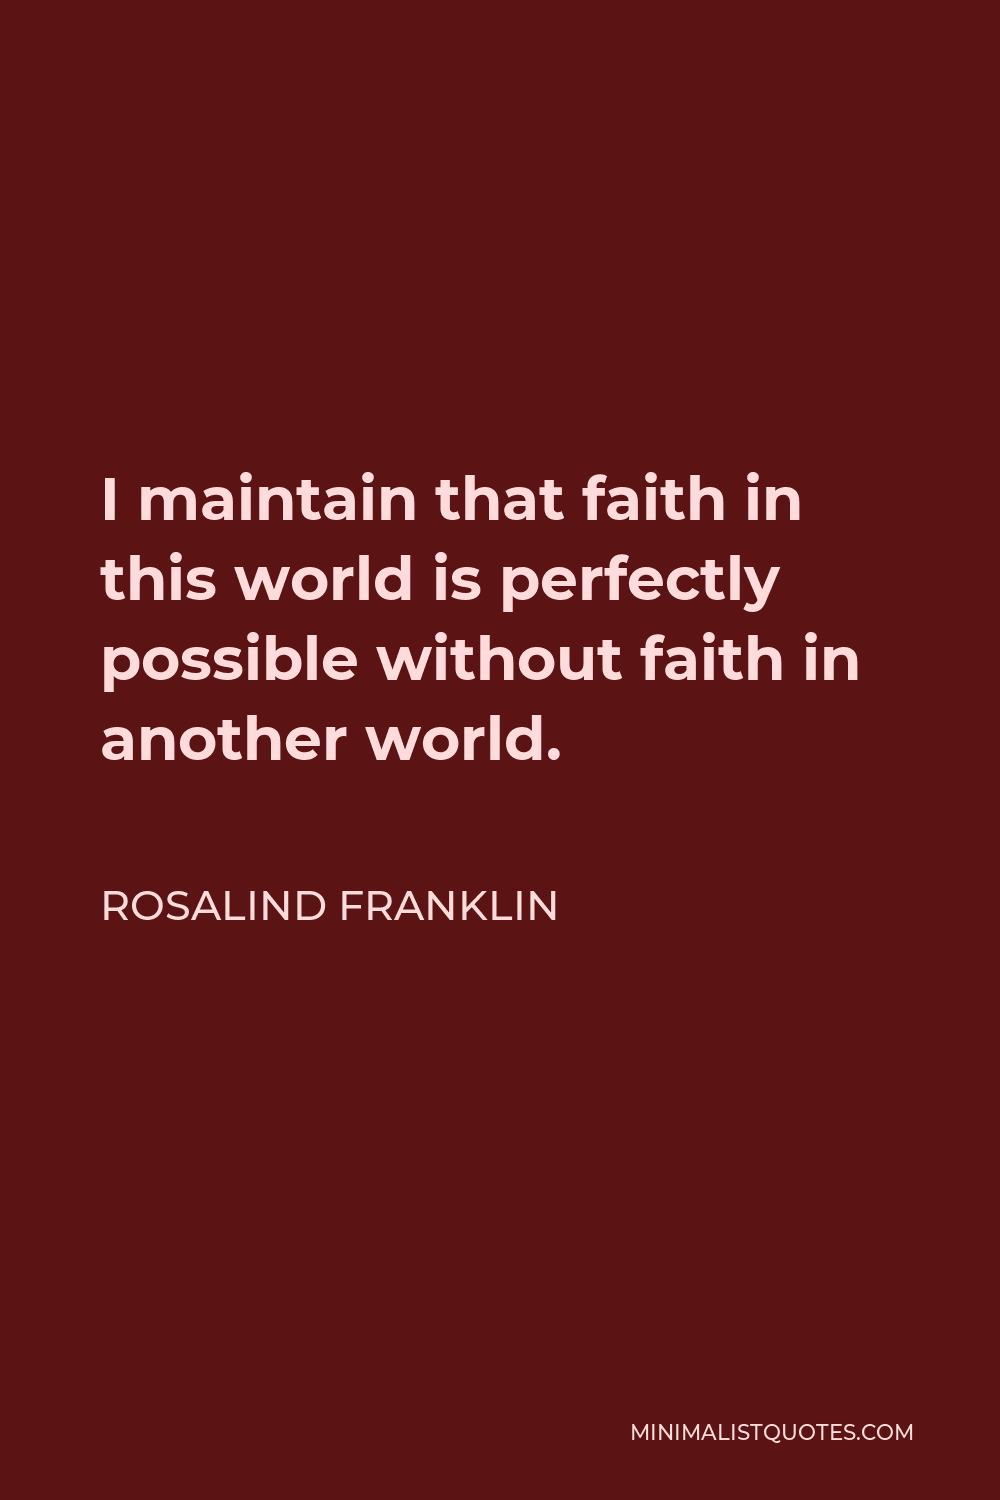 Rosalind Franklin Quote - I maintain that faith in this world is perfectly possible without faith in another world.